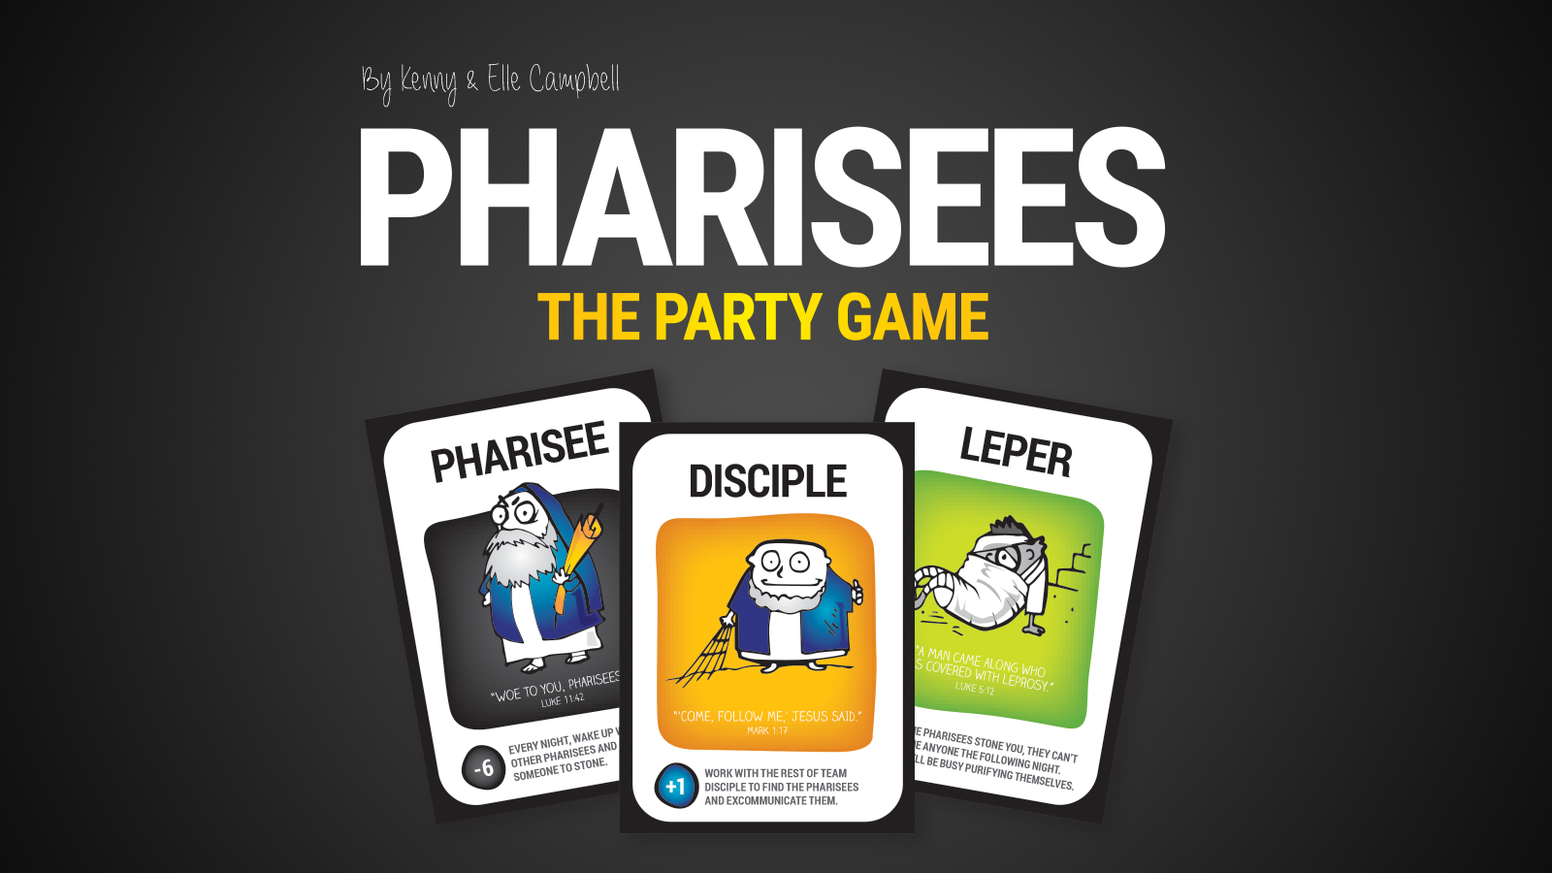 It's The Pharisees vs. The Disciples in this new take on a classic party game. It's like Mafia... but with a lot more Bible verses.